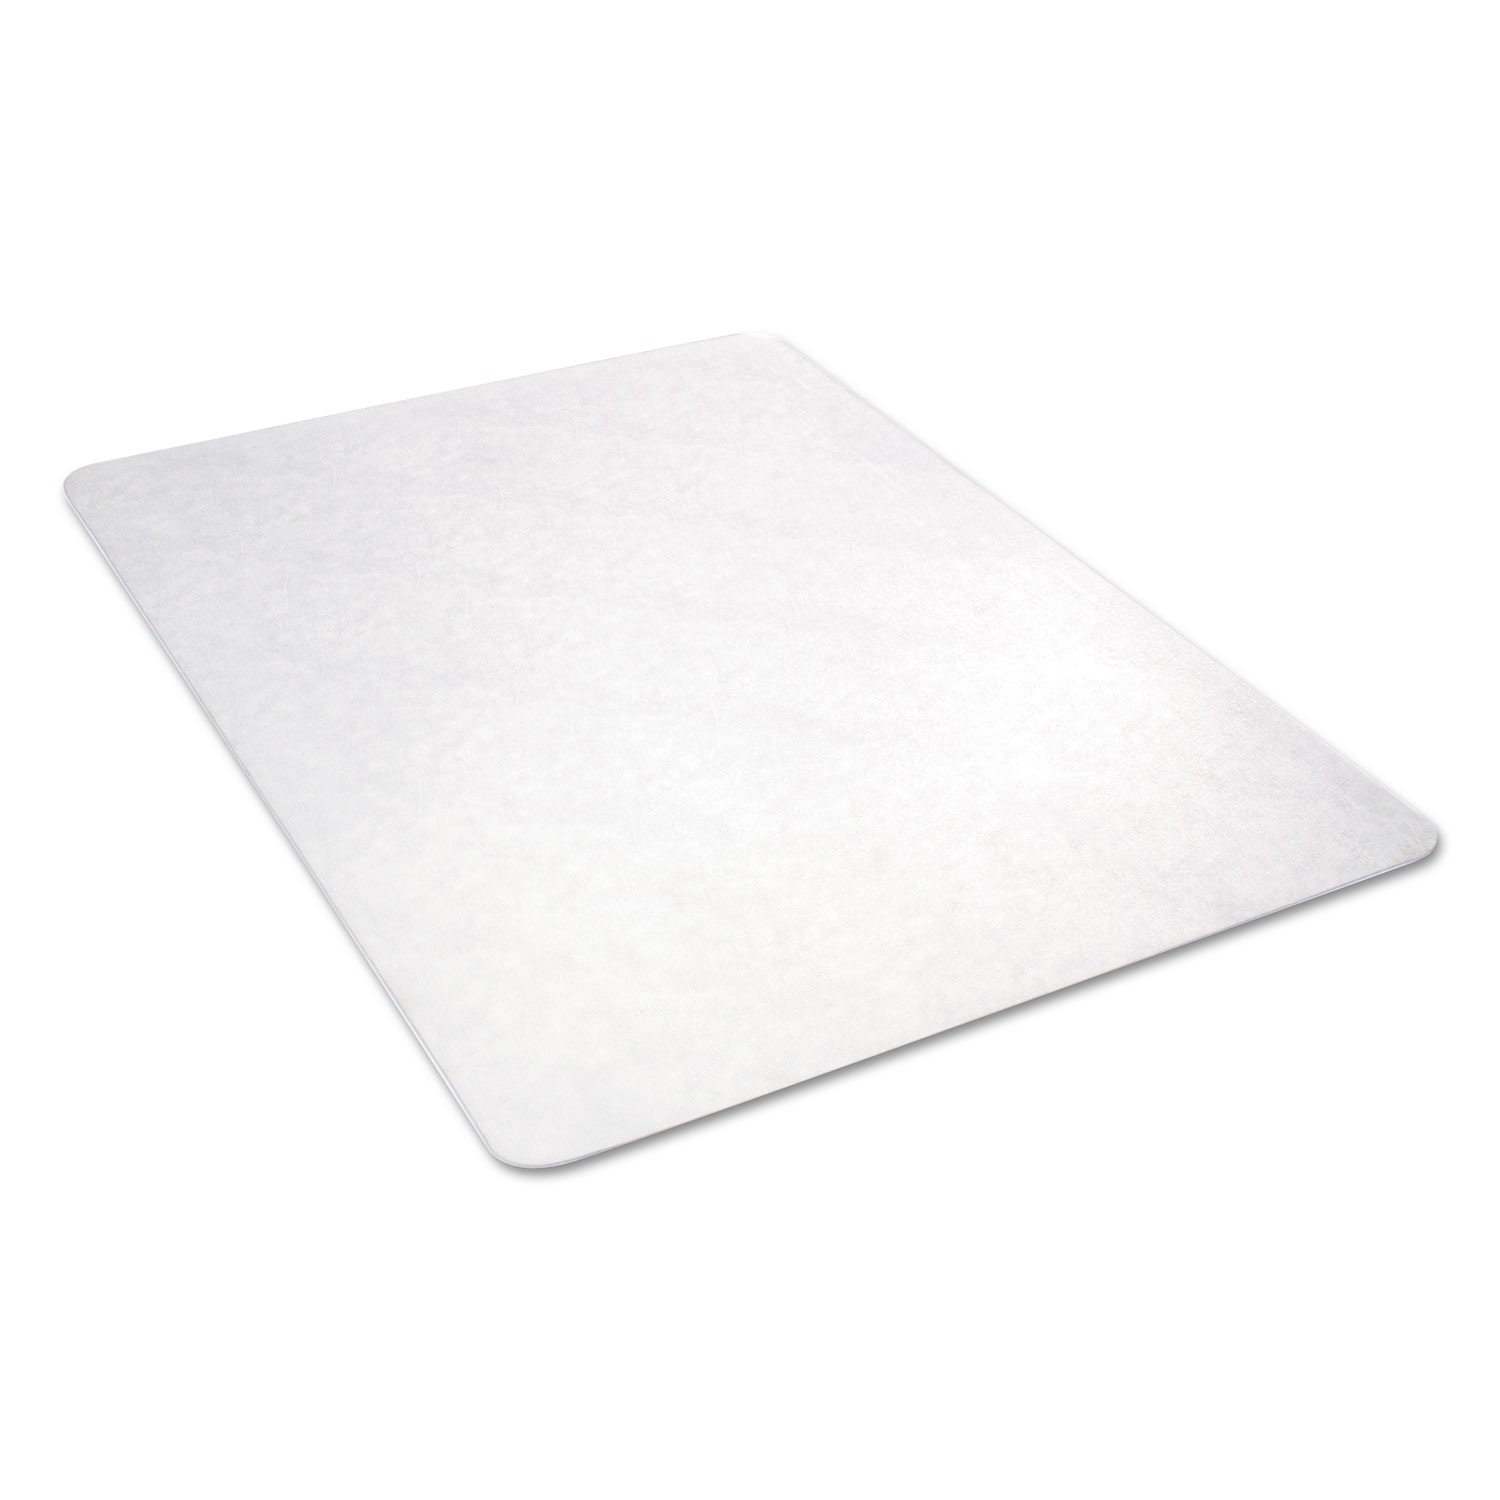 office chair mat 36 x 60 white rocker all day use non studded for hard floors by alera